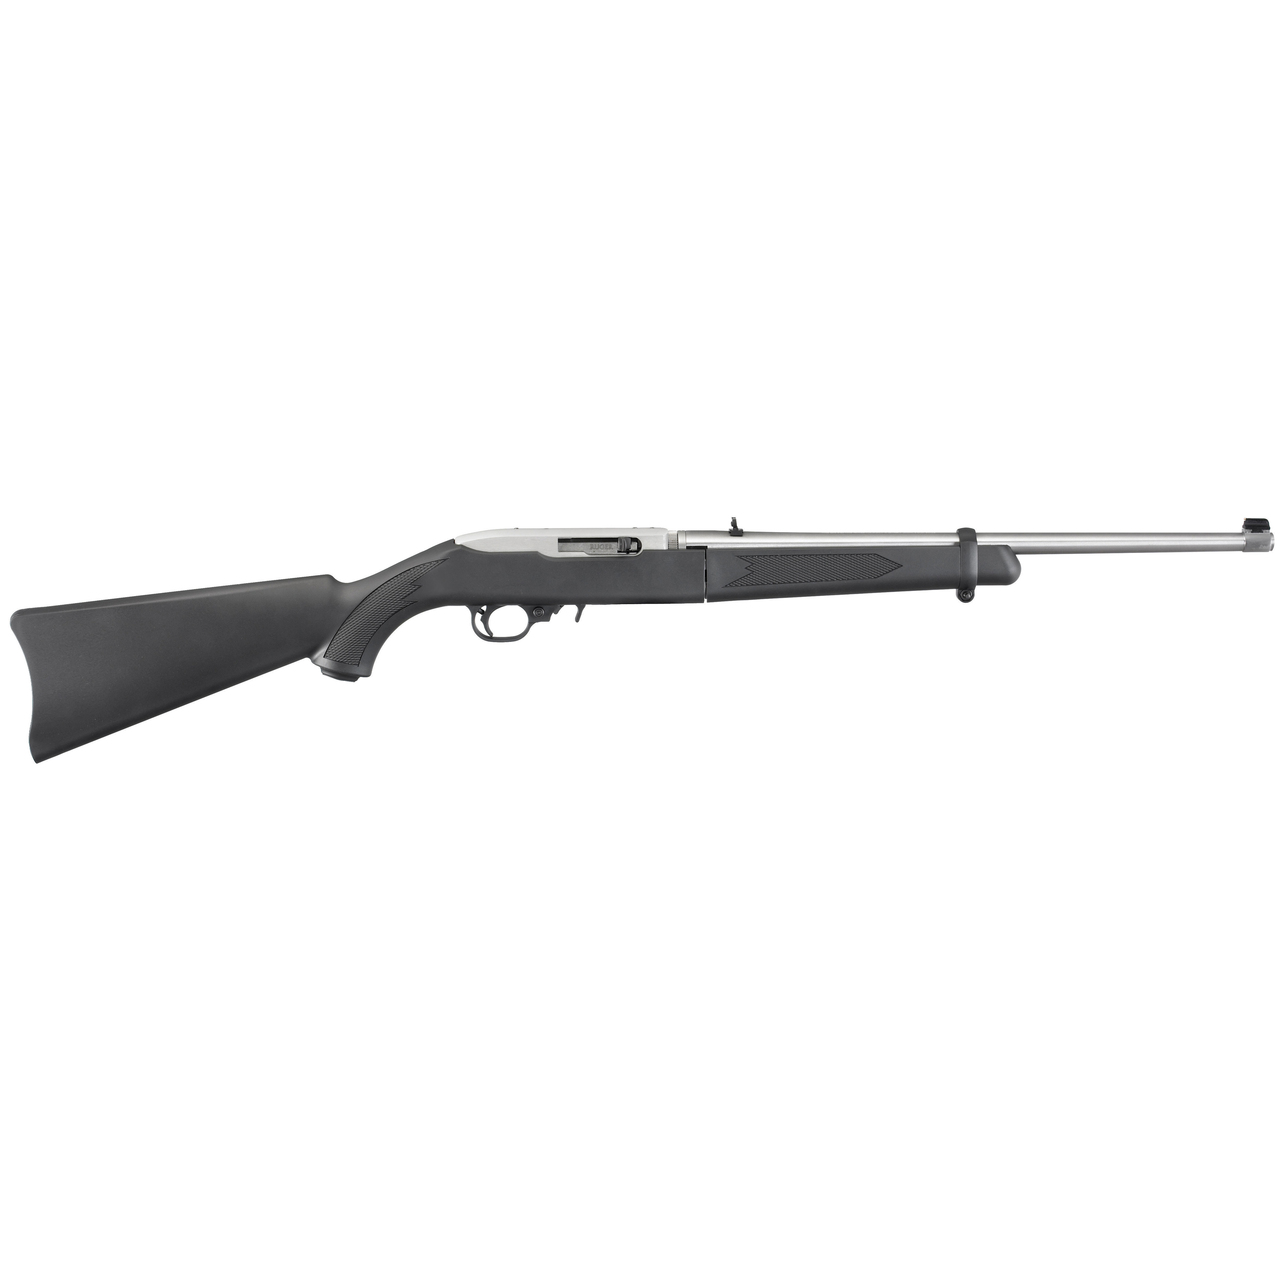 Ruger 10/22 Takedown Semi-automatic Rifle 22 LR